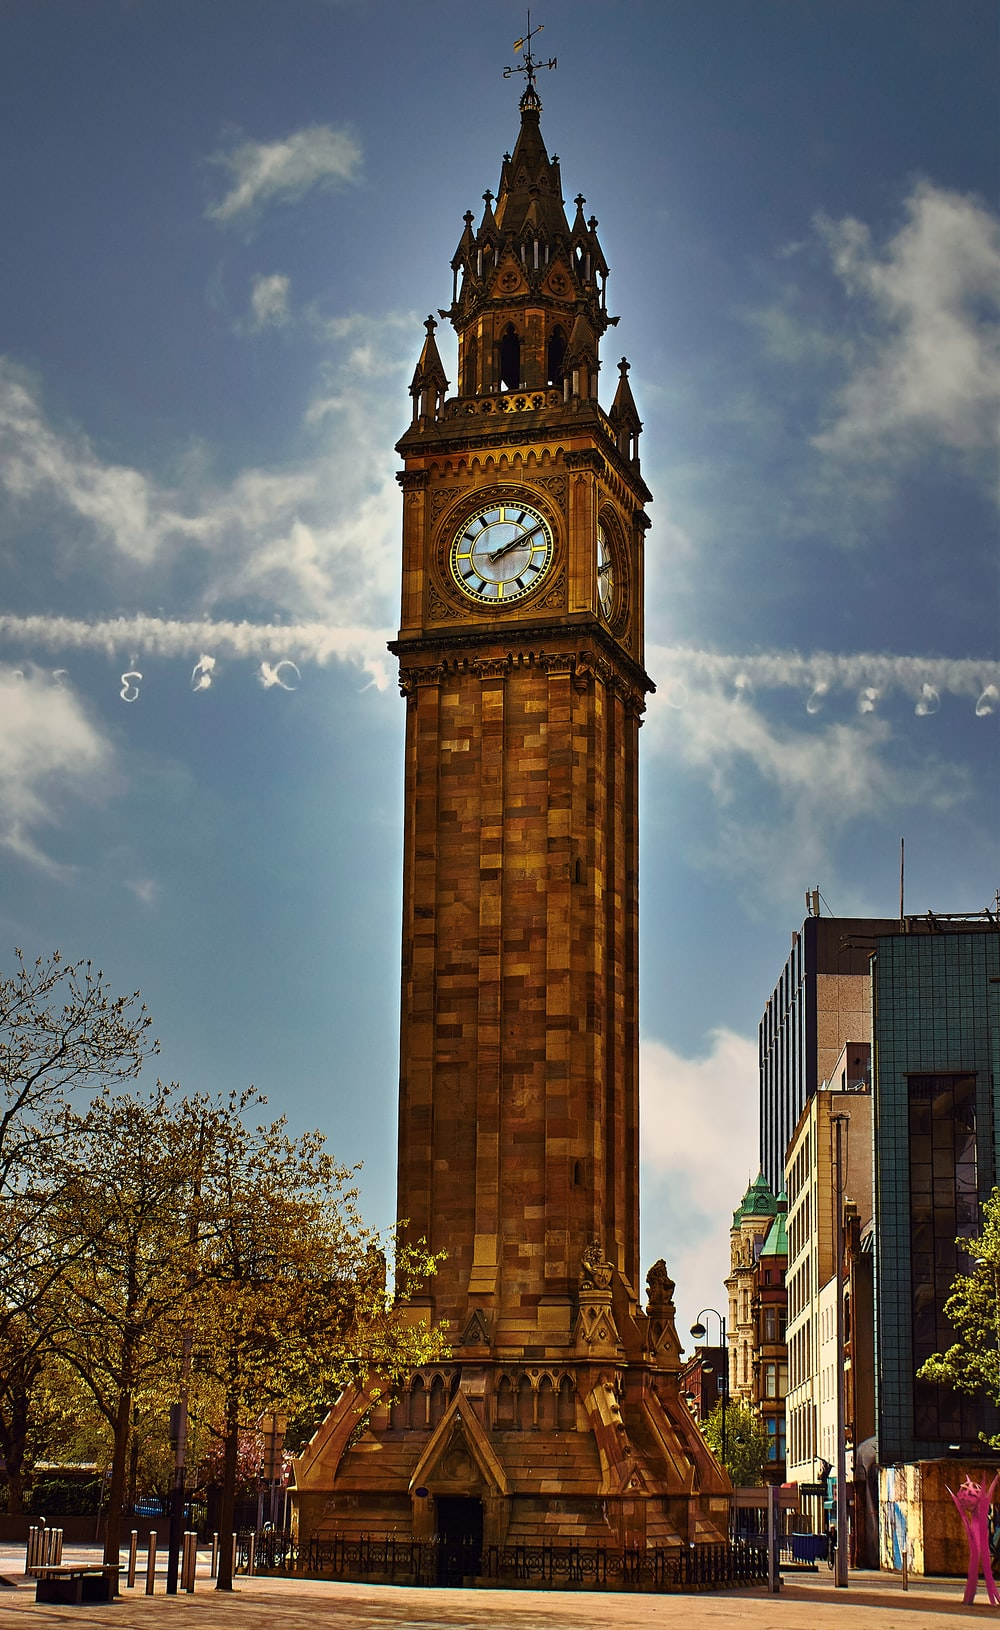 brown tower clock under cloudy sky during daytime